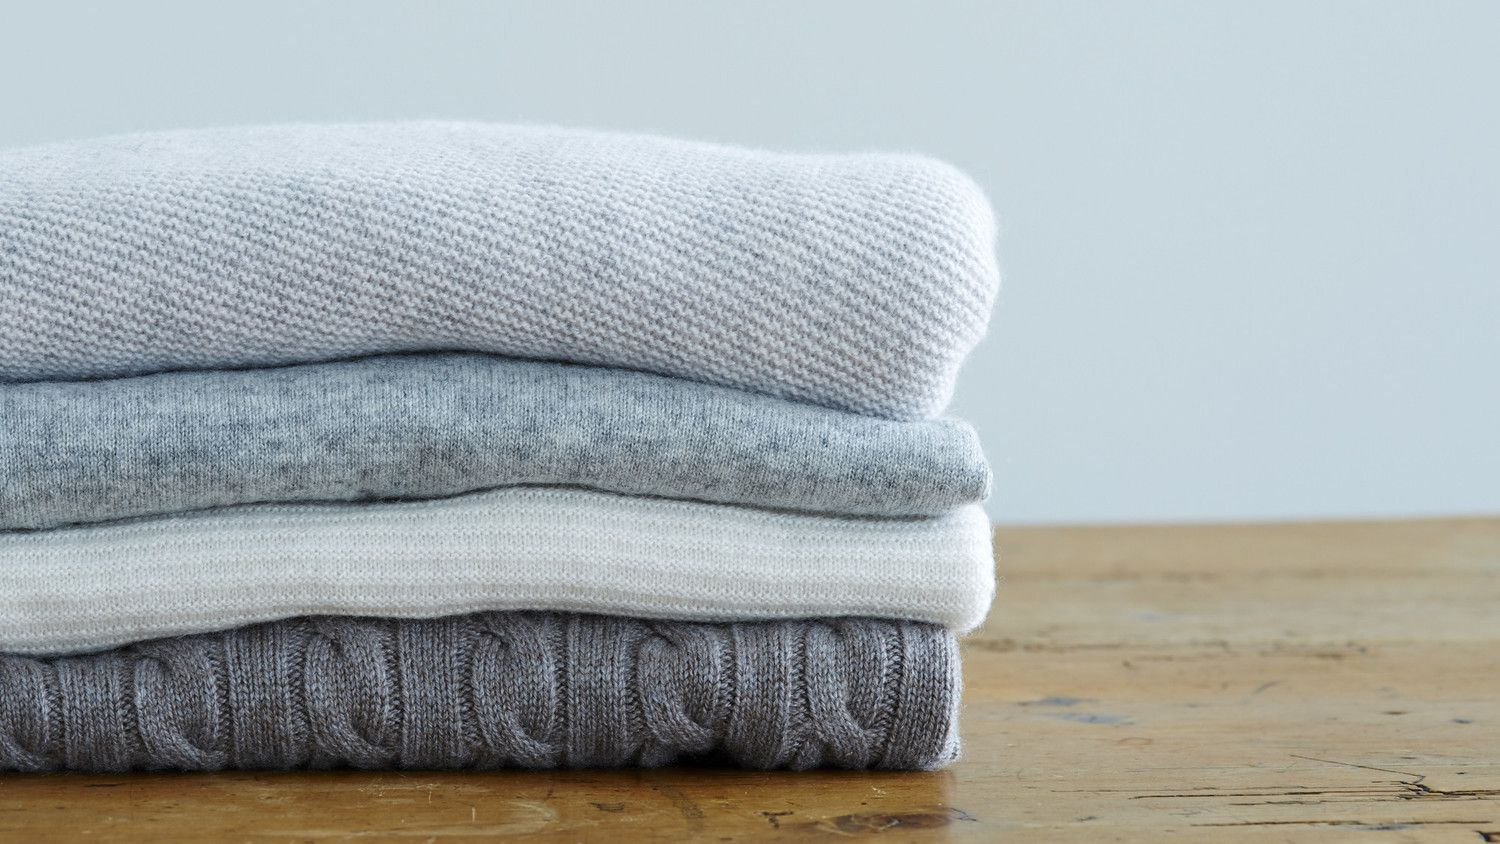 How To Wash And Care For Cashmere And Wool Sweaters Cashmere Sweaters Wool Sweaters Cashmere Wool